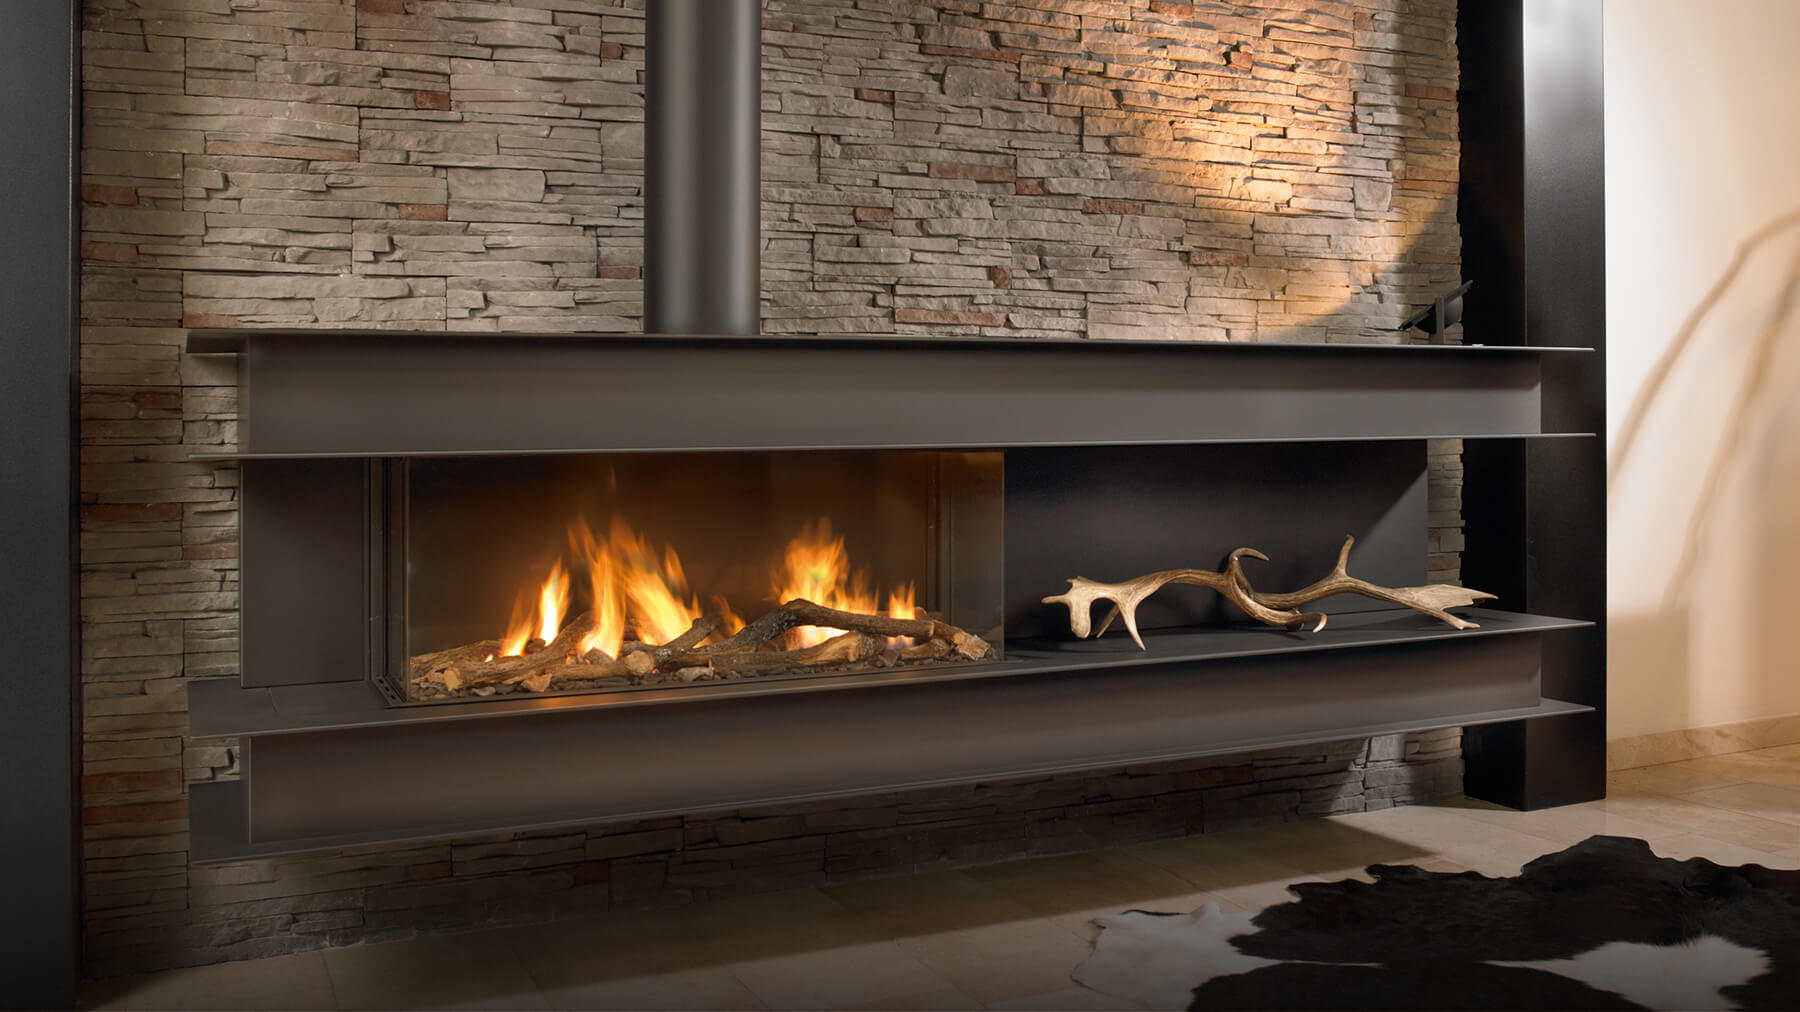 Seno modern wall hung gas fire high efficiency gas fire for Contemporary ventless gas fireplaces